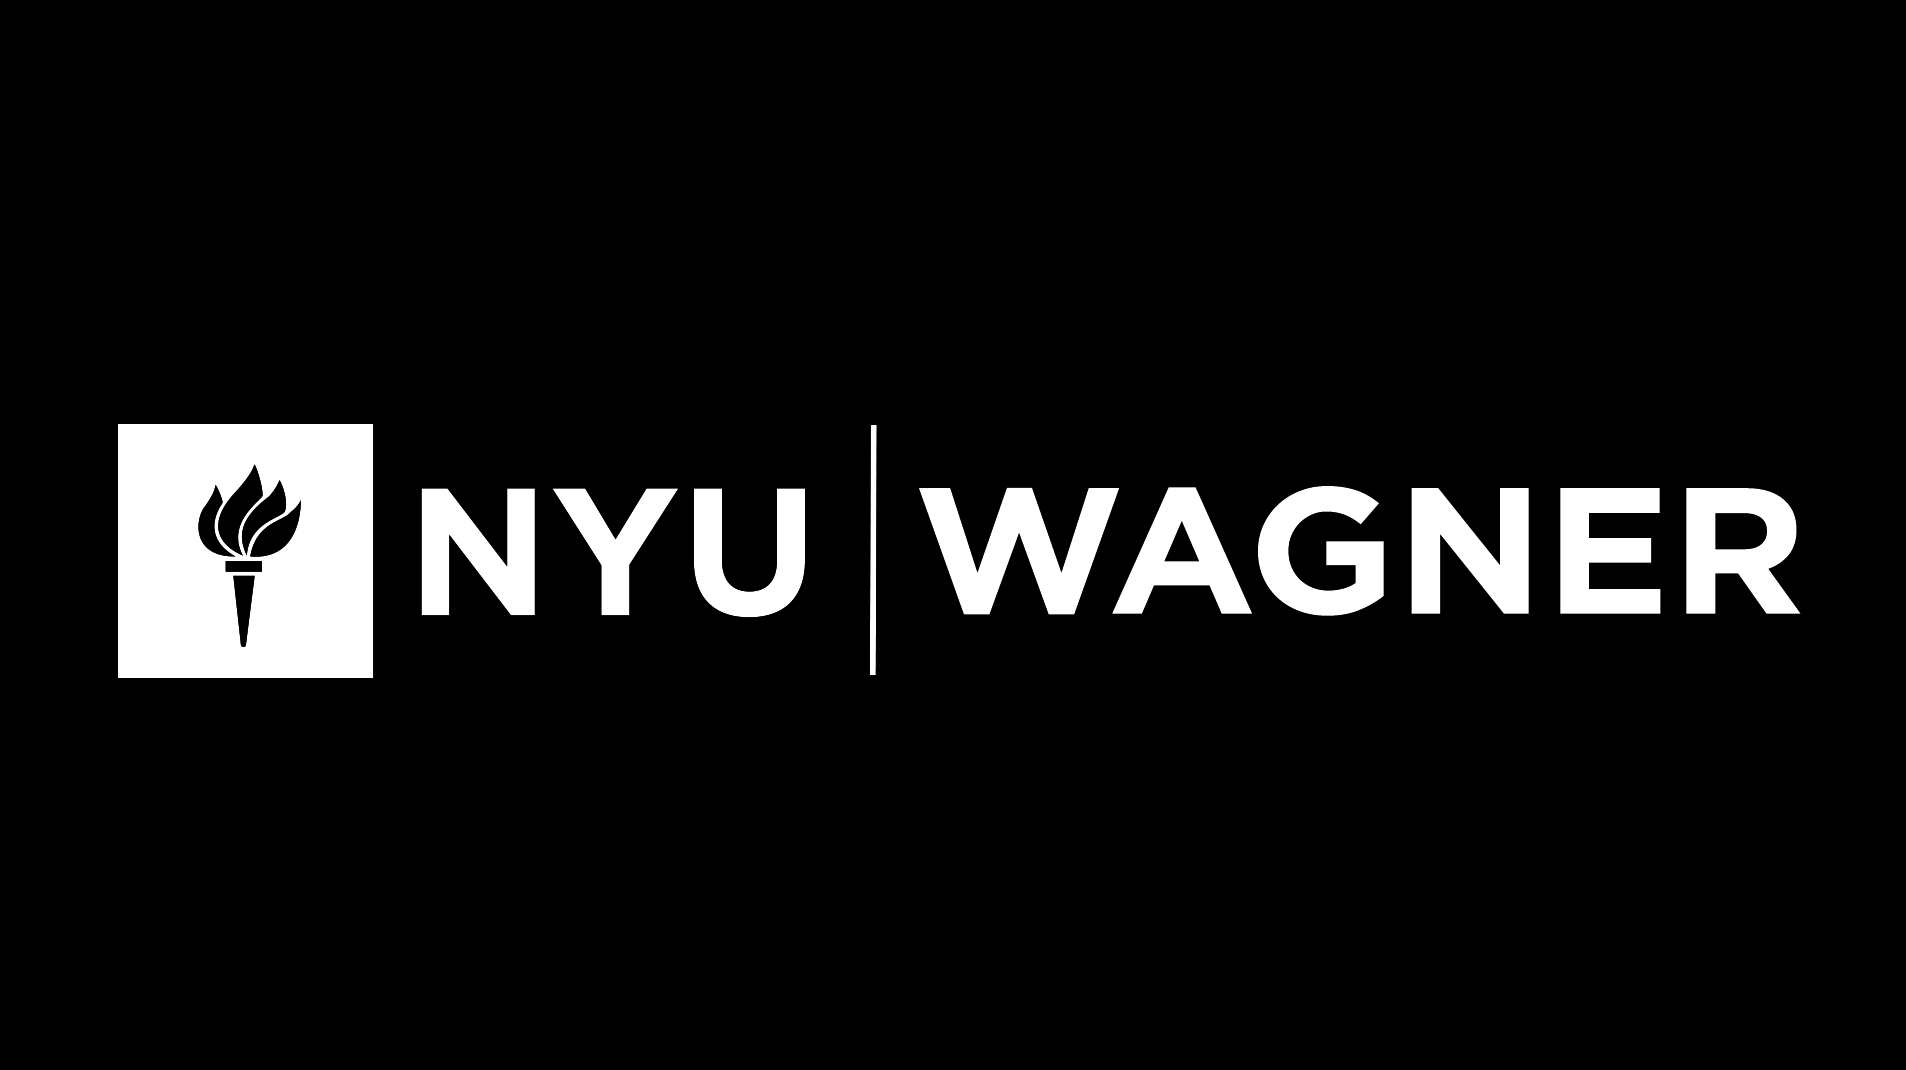 African Women's Public Service Fellowship 2020 for Masters study at NYU Wagner